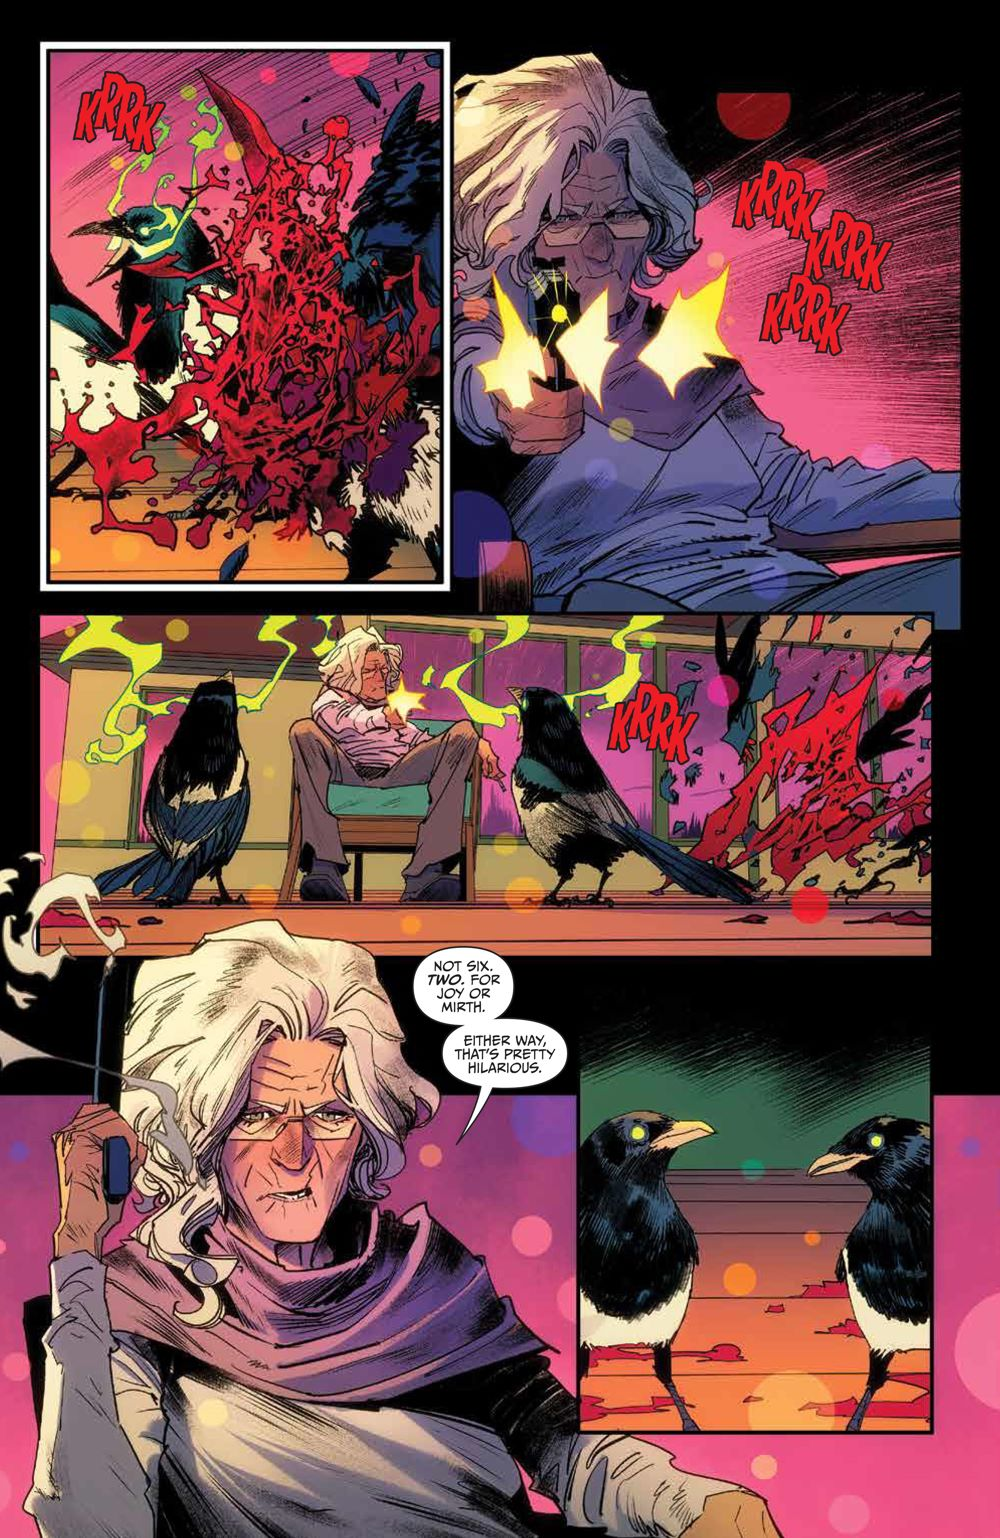 OnceFuture_v3_SC_PRESS_9 ComicList Previews: ONCE AND FUTURE VOLUME 3 THE PARLIAMENT OF MAGPIES TP